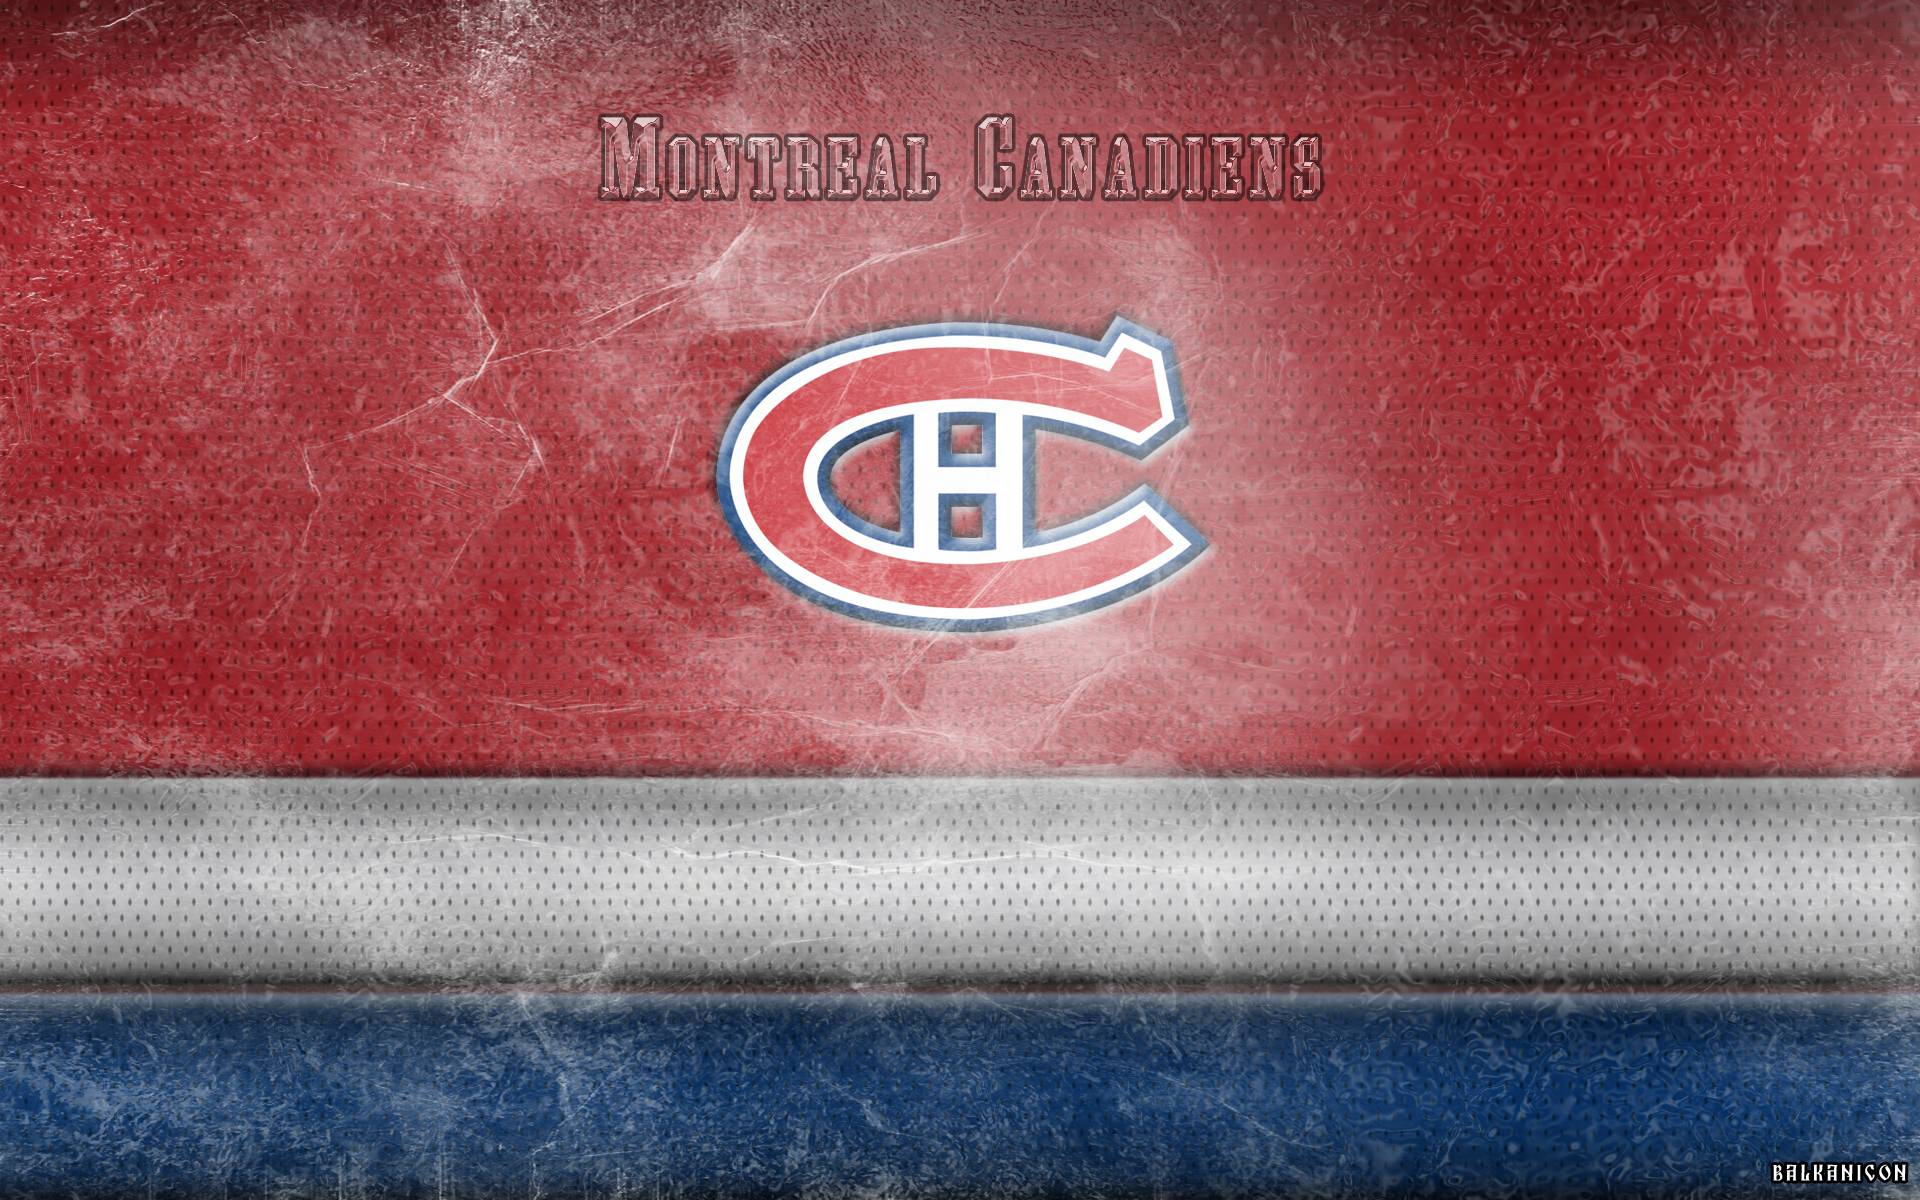 Montreal Canadiens wallpapers by Balkanicon